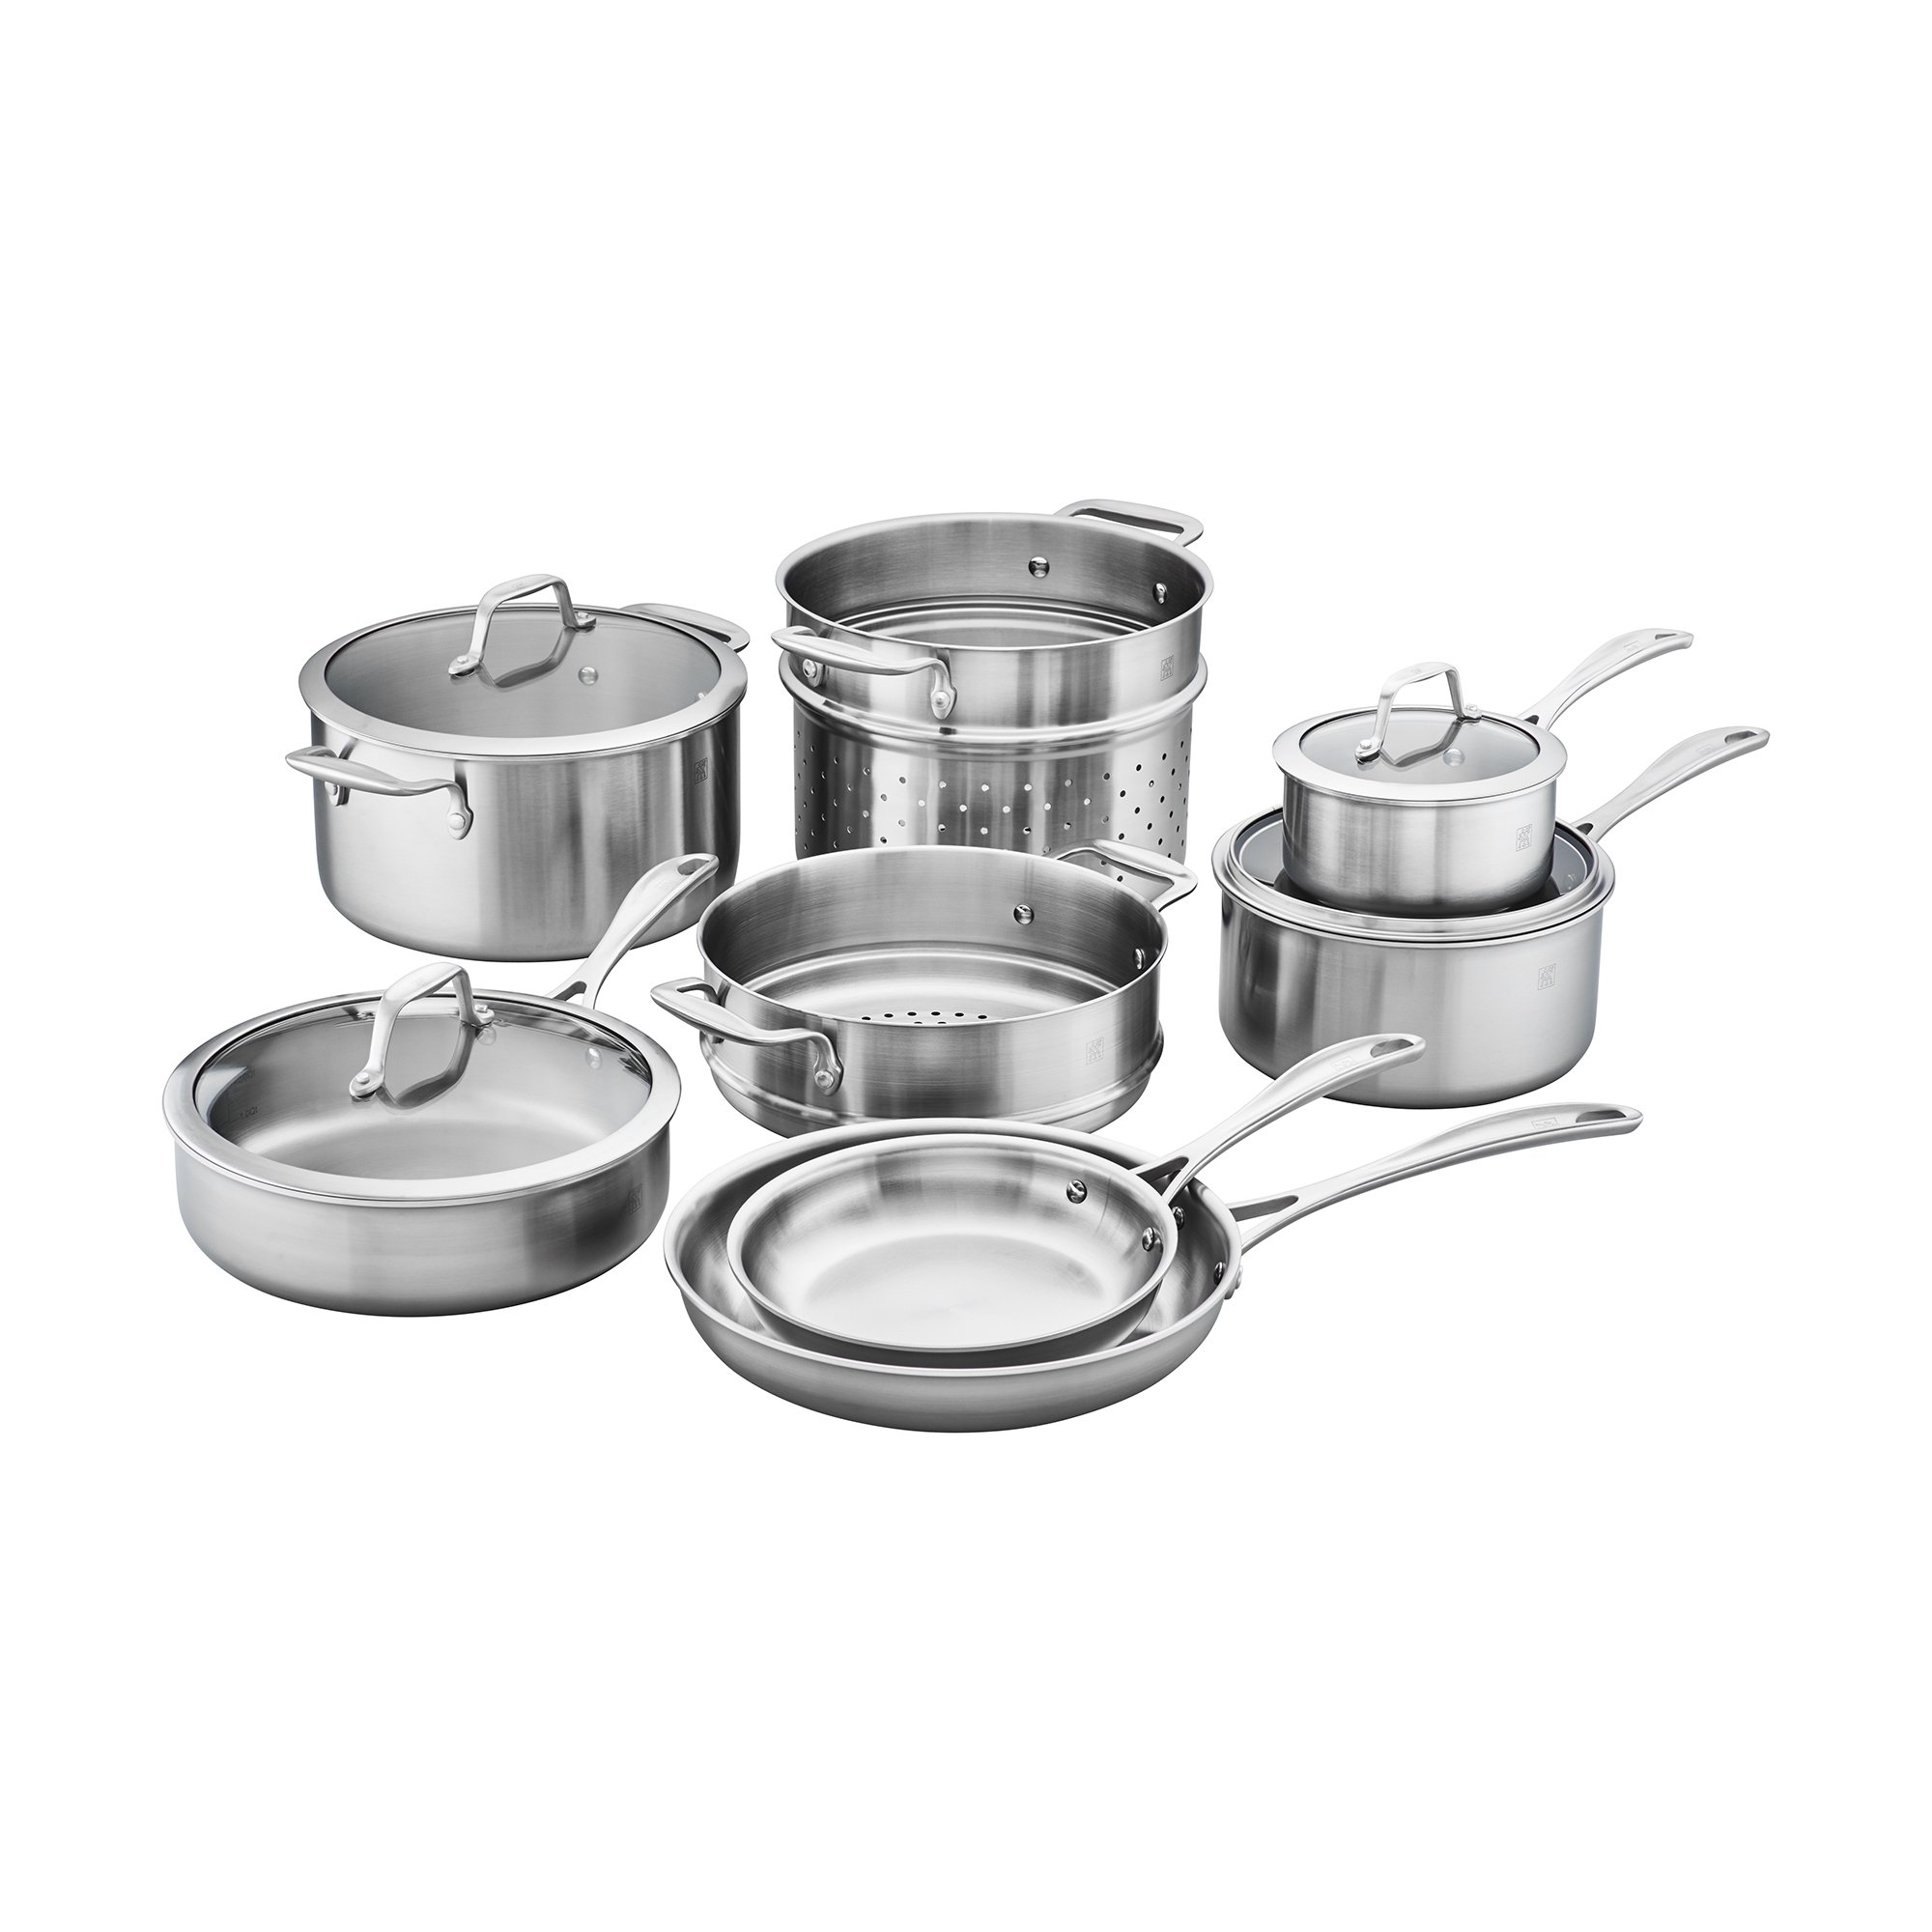 ZWILLING Spirit 3-ply 12-pc Stainless Steel Cookware Set